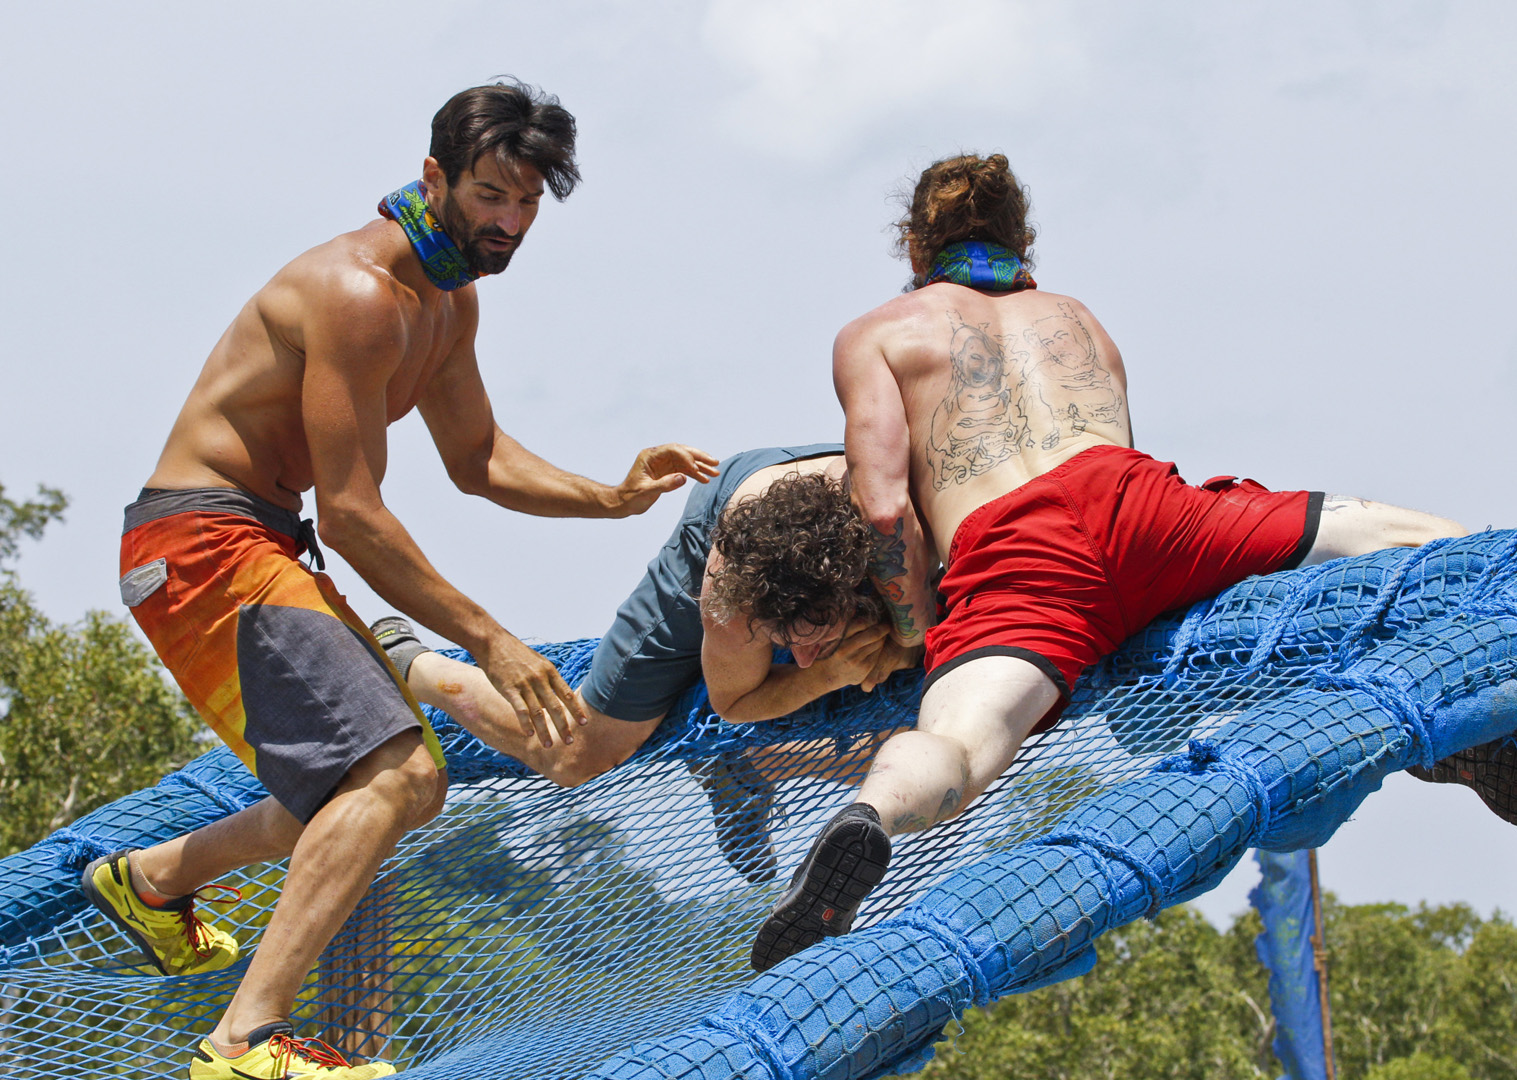 Nick, Neal, and Jason battle the obstacles in the challenge.